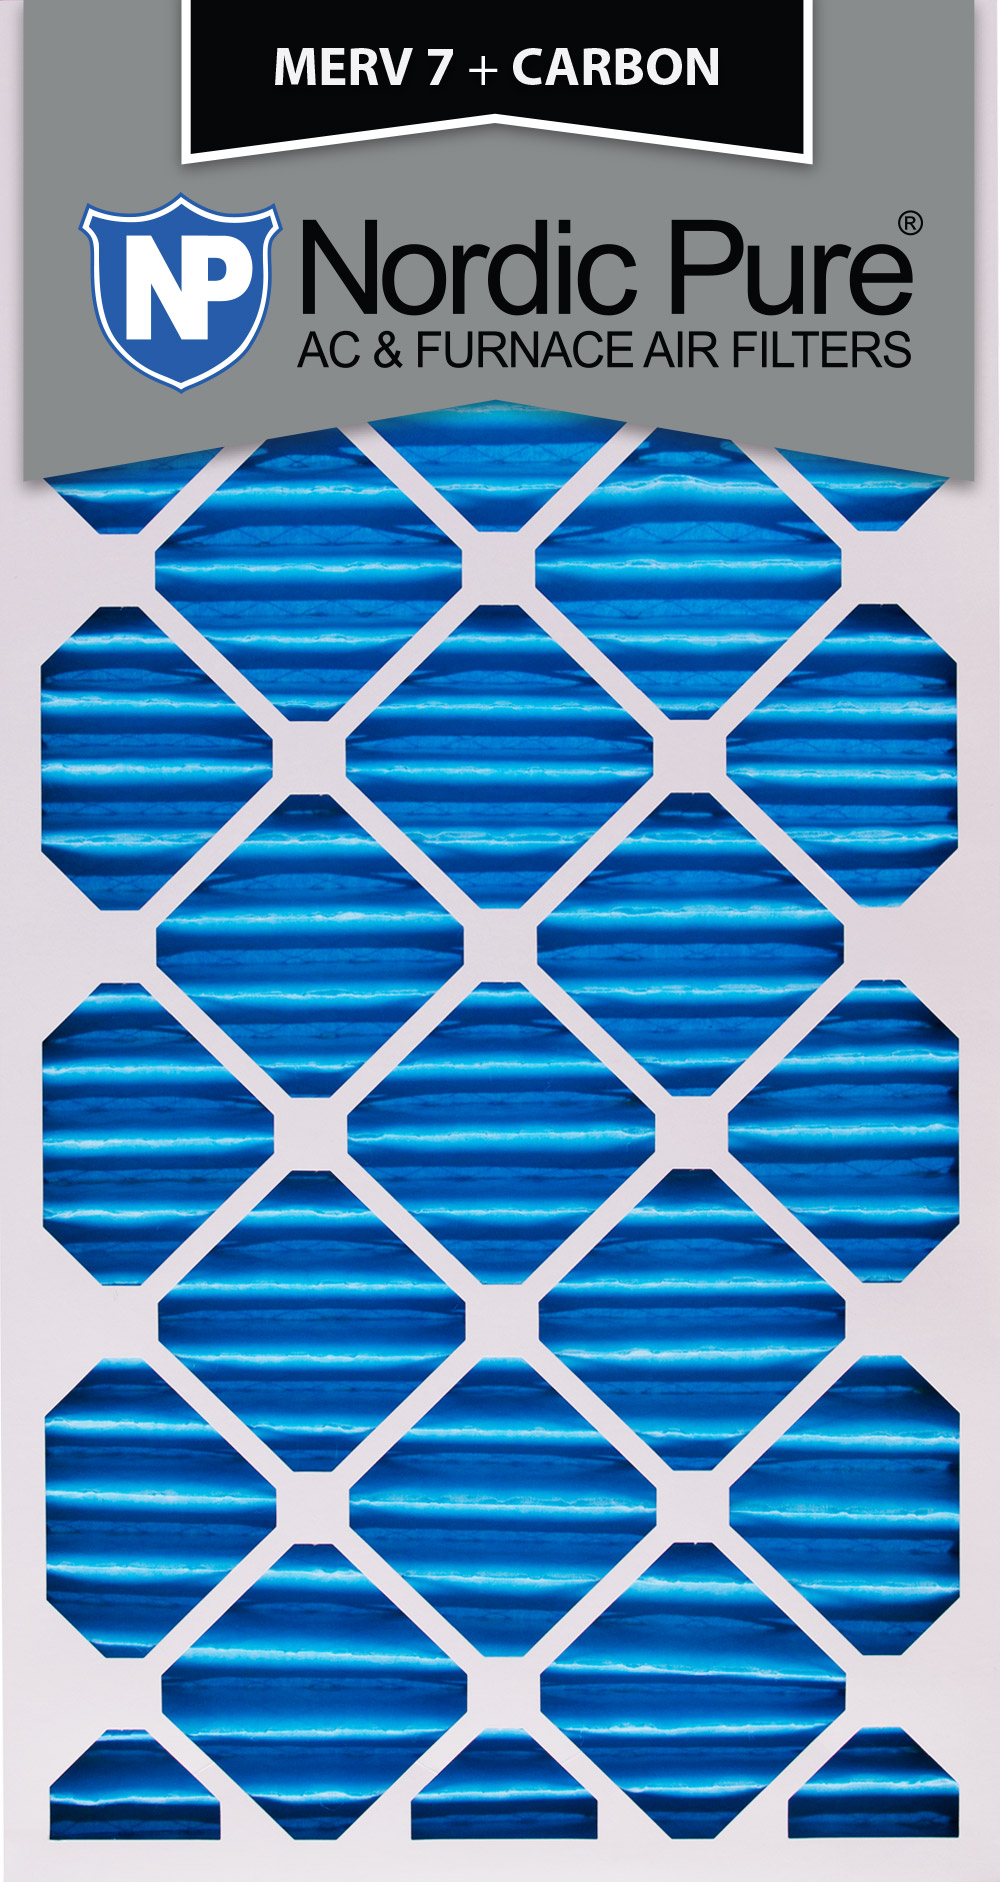 Pleated Micro Glass Media 3 Length Millennium Filters MAIN-FILTER MN-MF0358331 Direct Interchange for MAIN-filter-MF0358331 3 Length